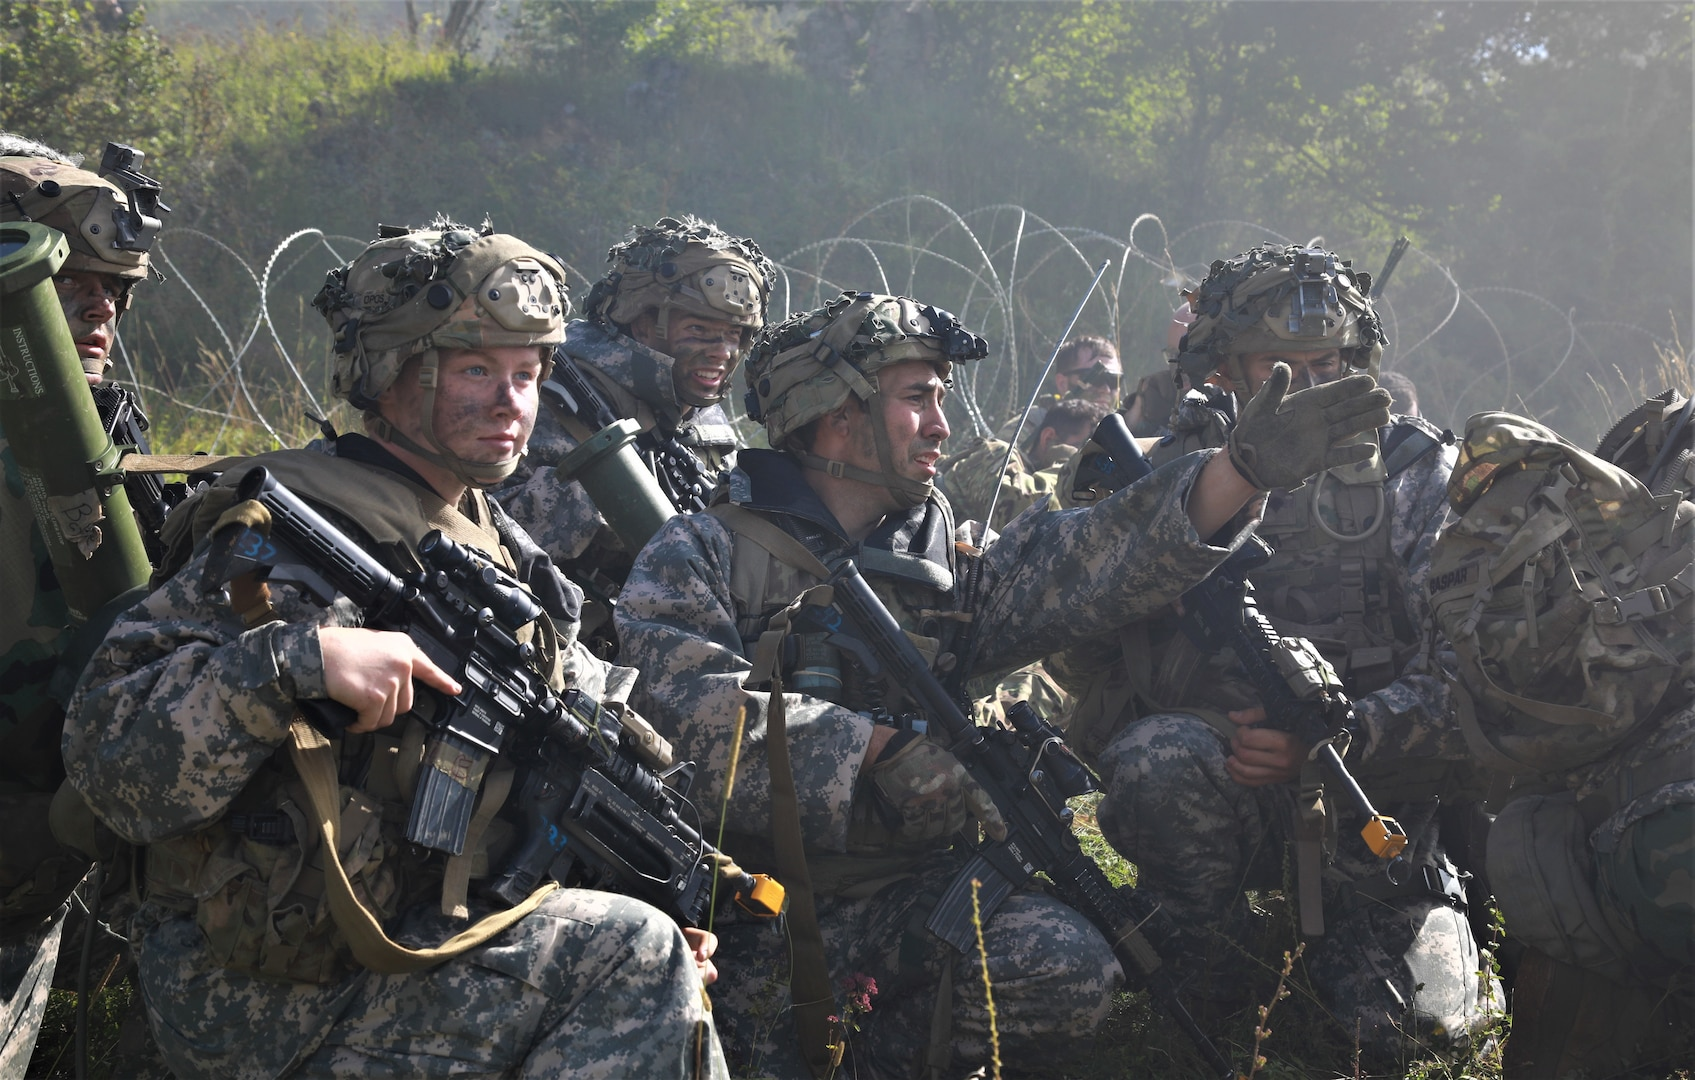 Army Paratroopers assigned to 173rd Airborne Brigade prepare to move into town, August 20, 2020, during Saber Junction 20, held at Army's Grafenwoehr and Hohenfels training areas (U.S. Army/Tomarius Roberts)